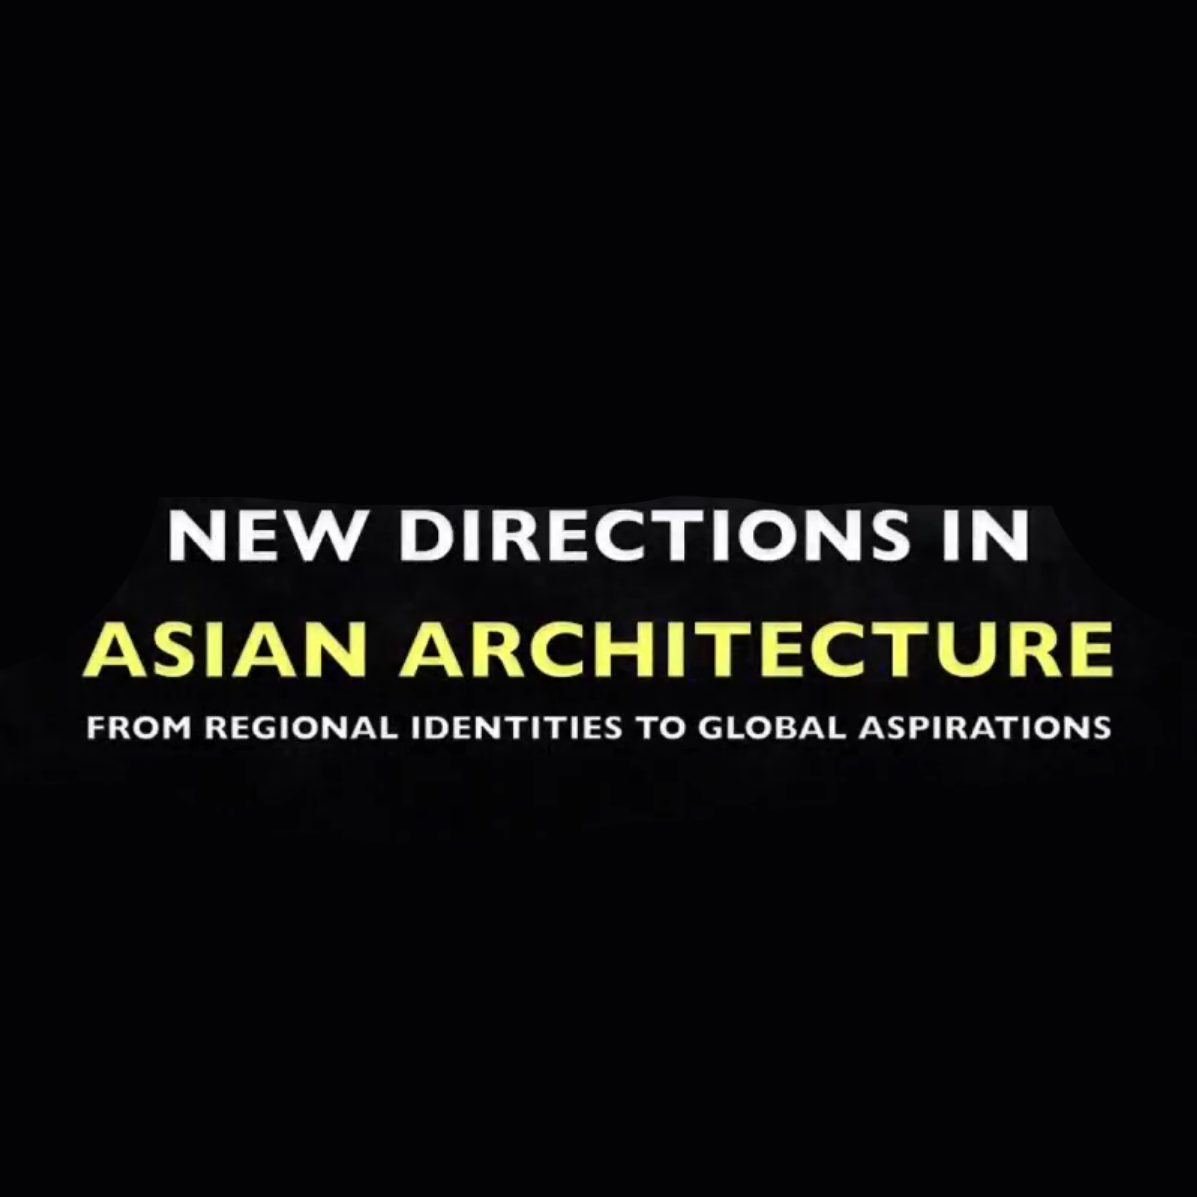 New directions in Asian architecture: From regional to global aspirations 2011 (Image   ©   Anoma Pieris)